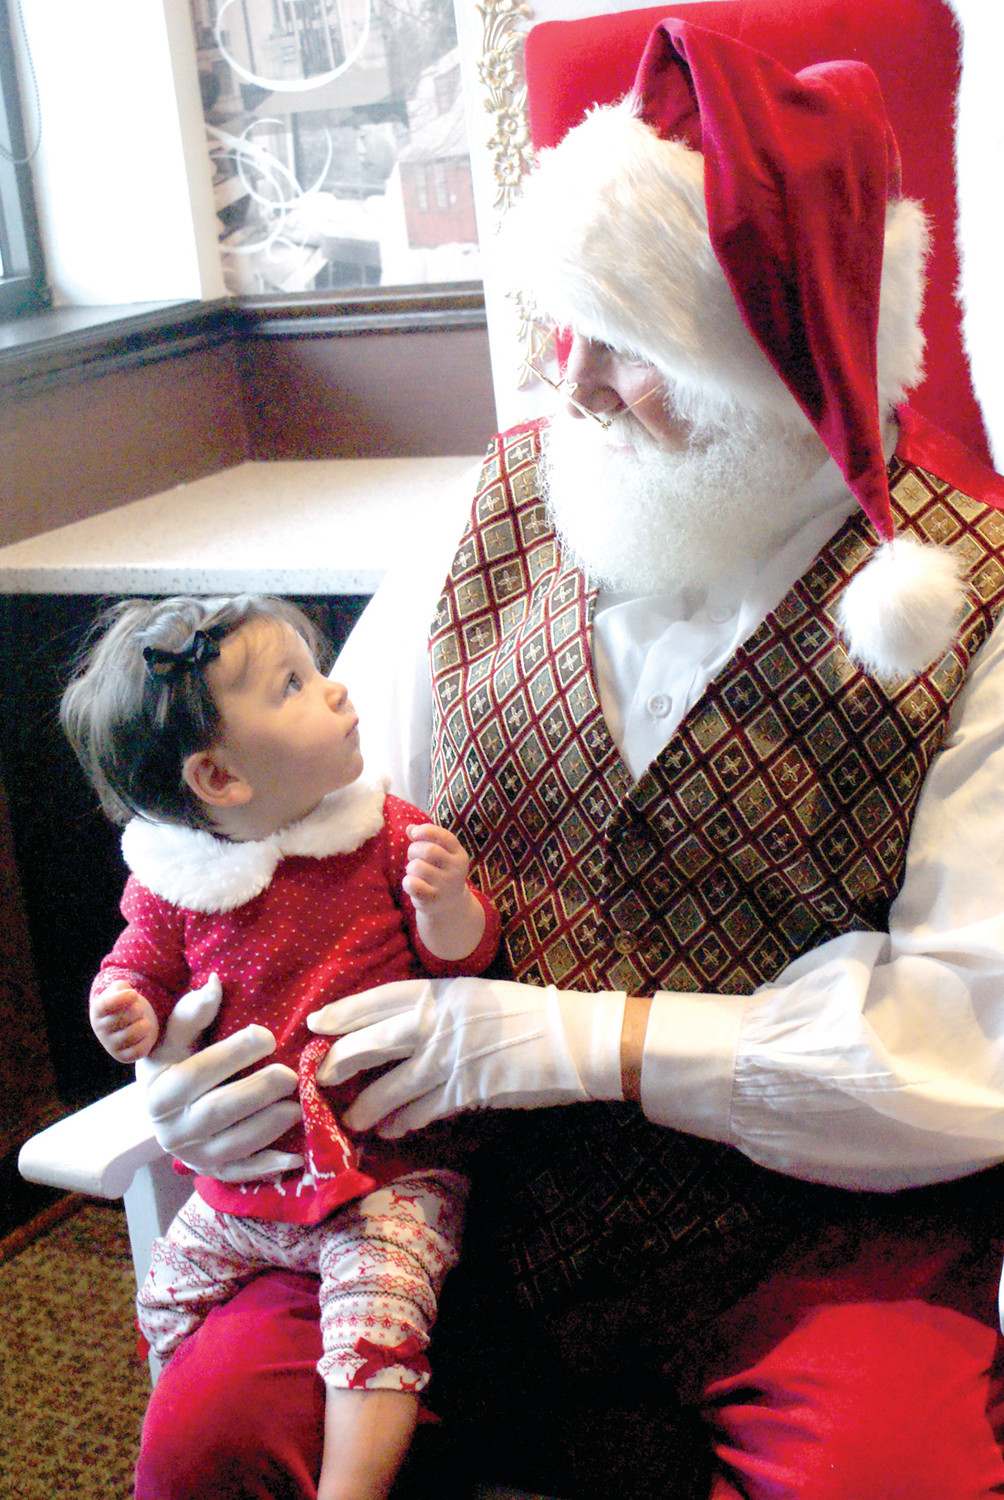 FIRST CHRISTMAS: Meeting Santa Claus for the first time was 7 months old Brinley Fusco at The Corner Bakery. The experience was magical for both Santa and Brinley.